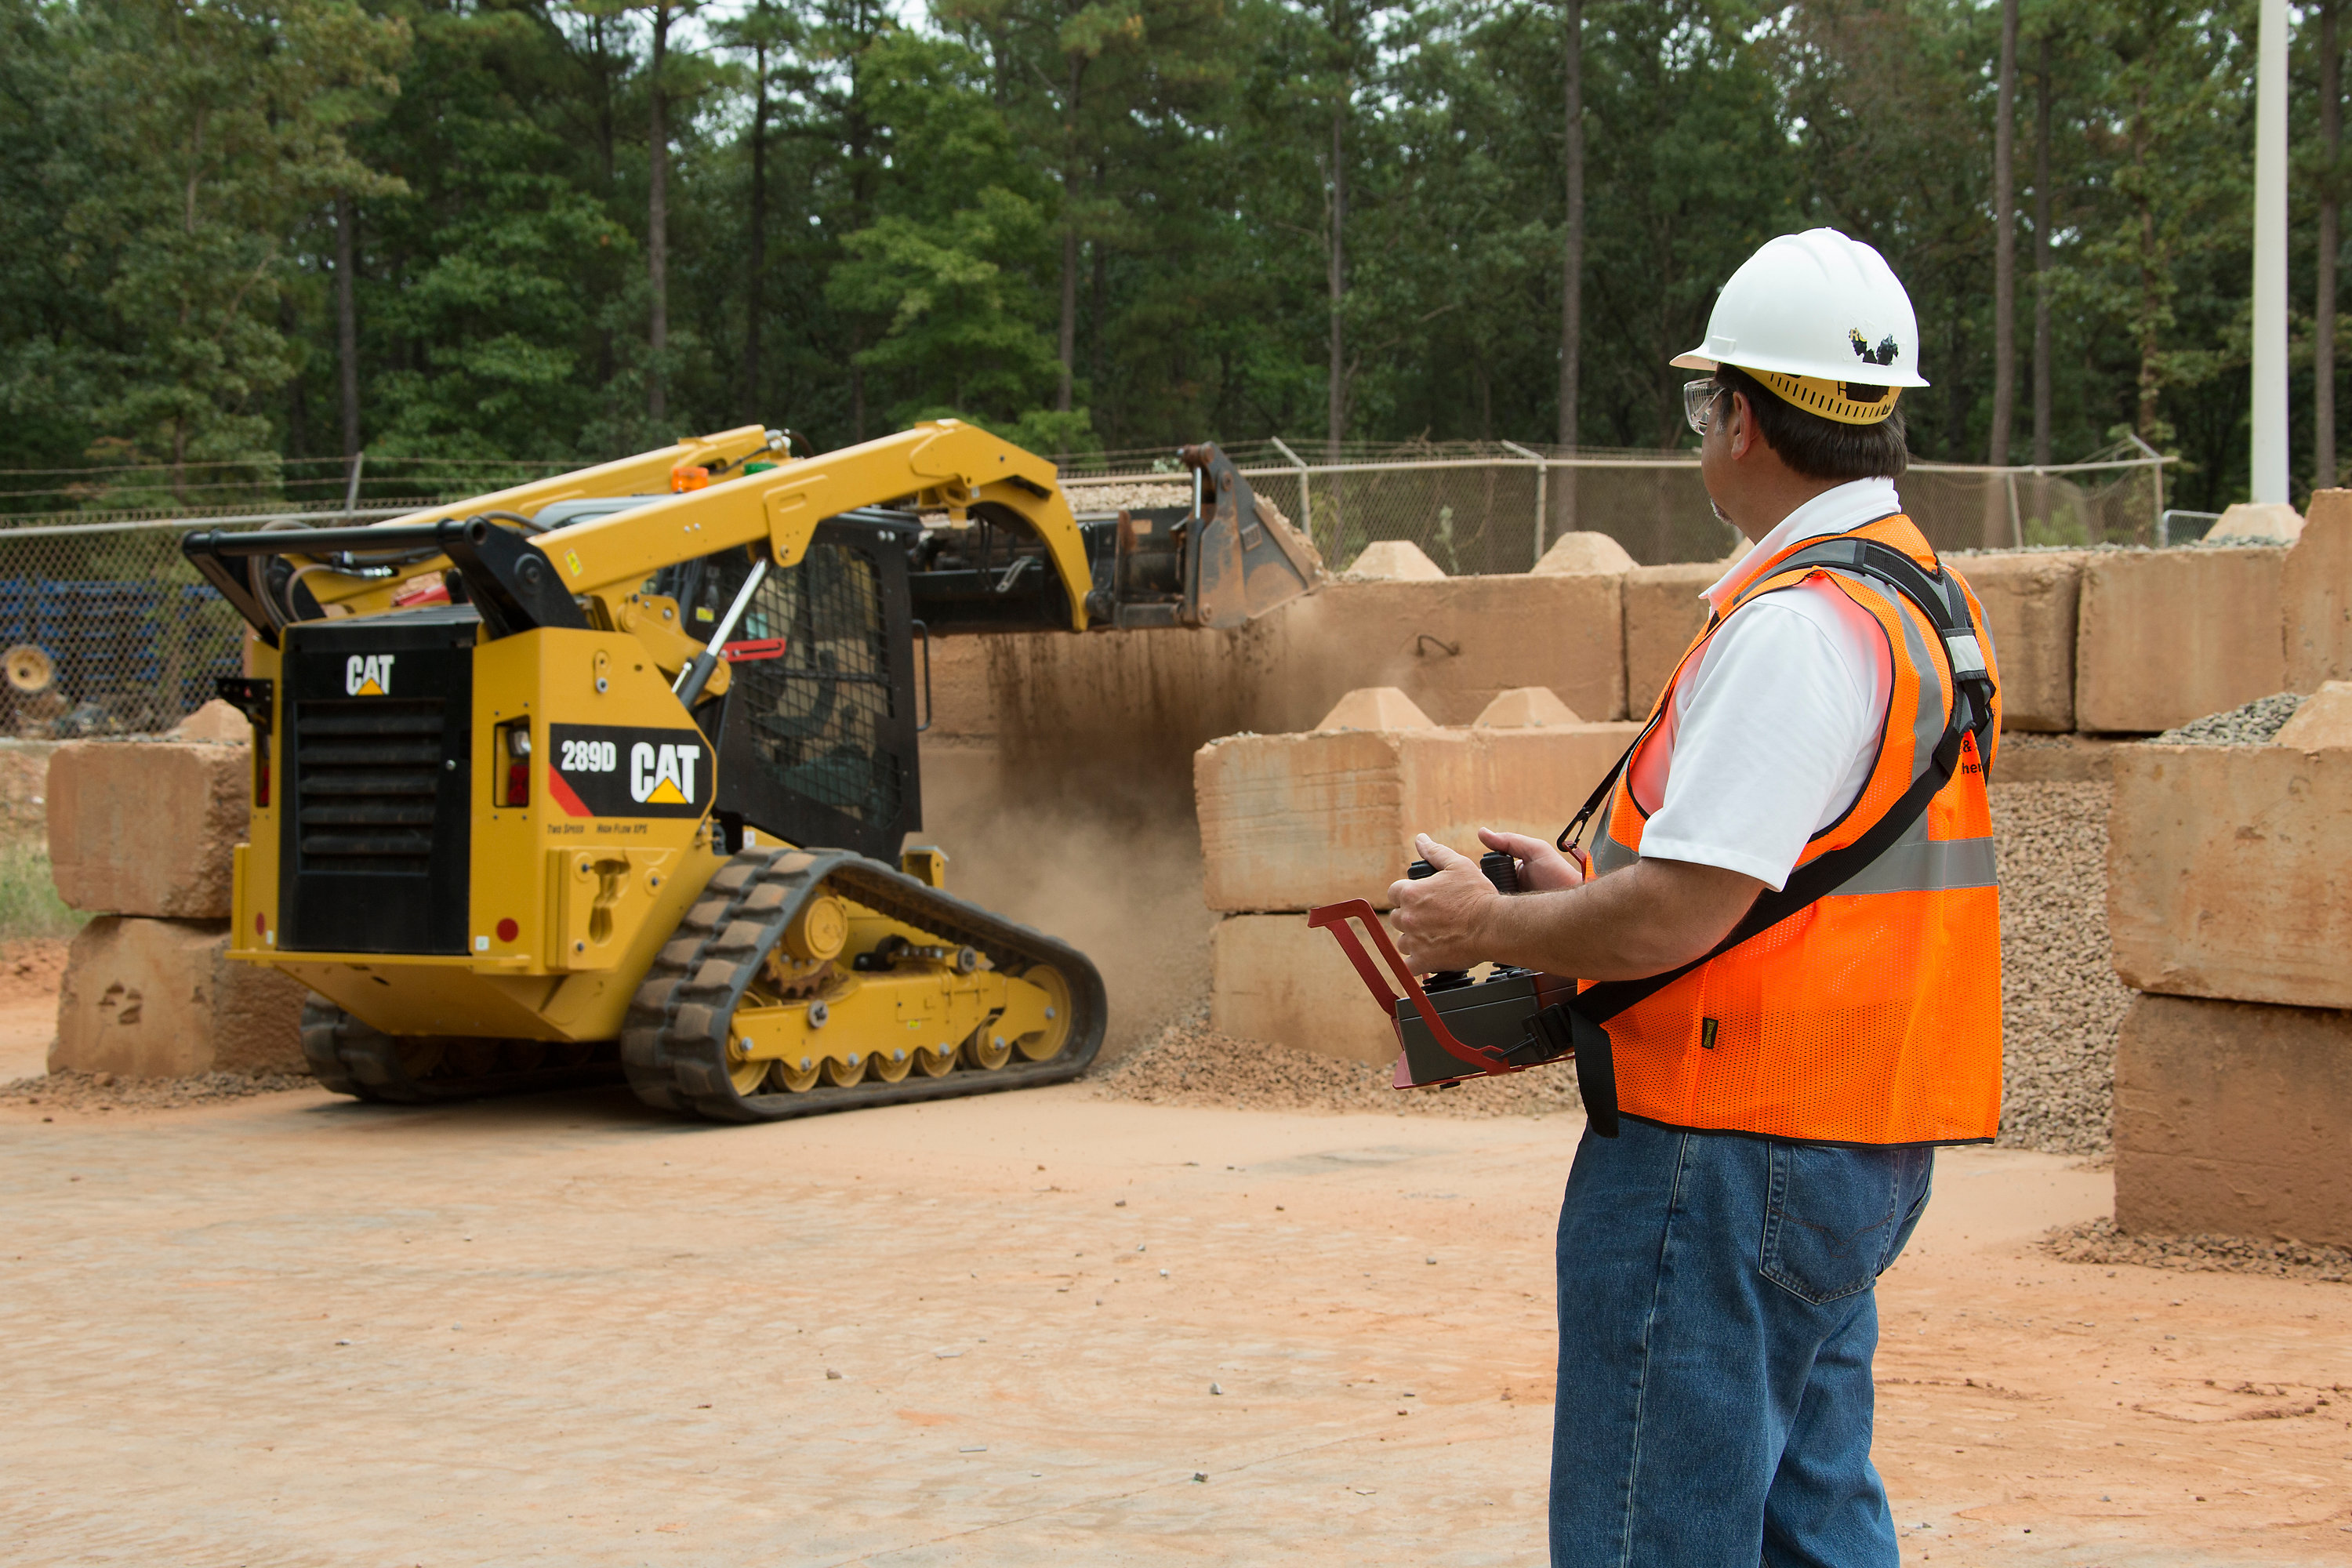 Cat | Caterpillar and TORC Robotics launch remote control system for